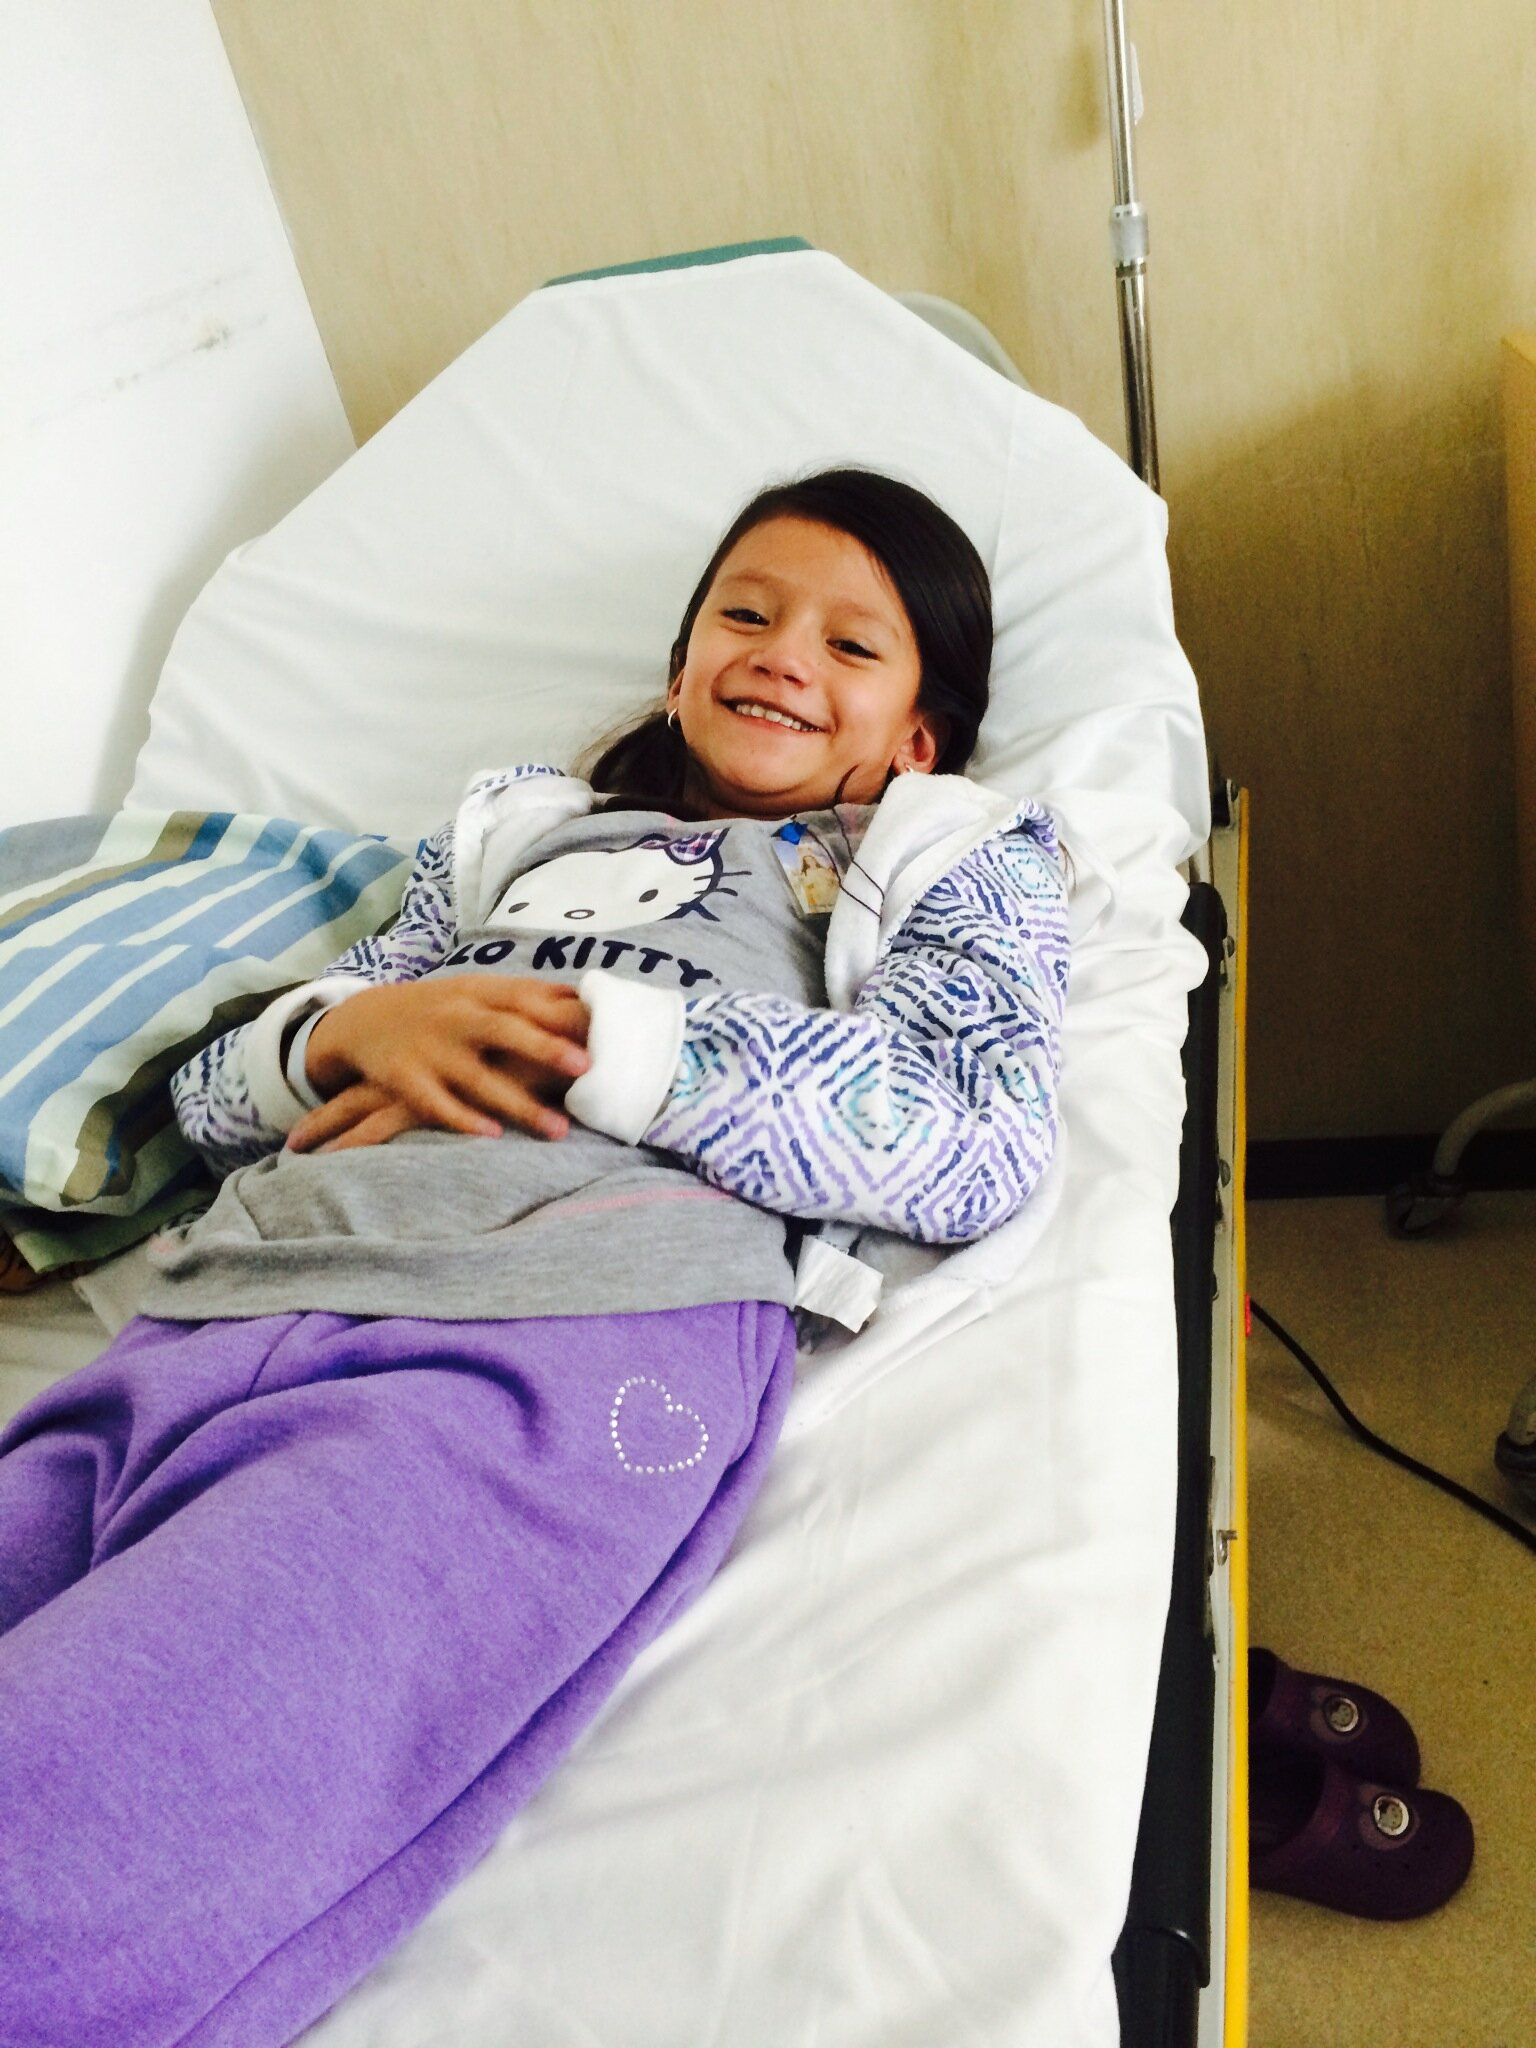 Surgical candidate Mariantonella, a CHD patient, needs a Fontan procedure. Heart to Heart exists to develop new teams of heart specialists to save thousands of pediatric heart patients like Mariantonella who are waiting for life-saving treatment.